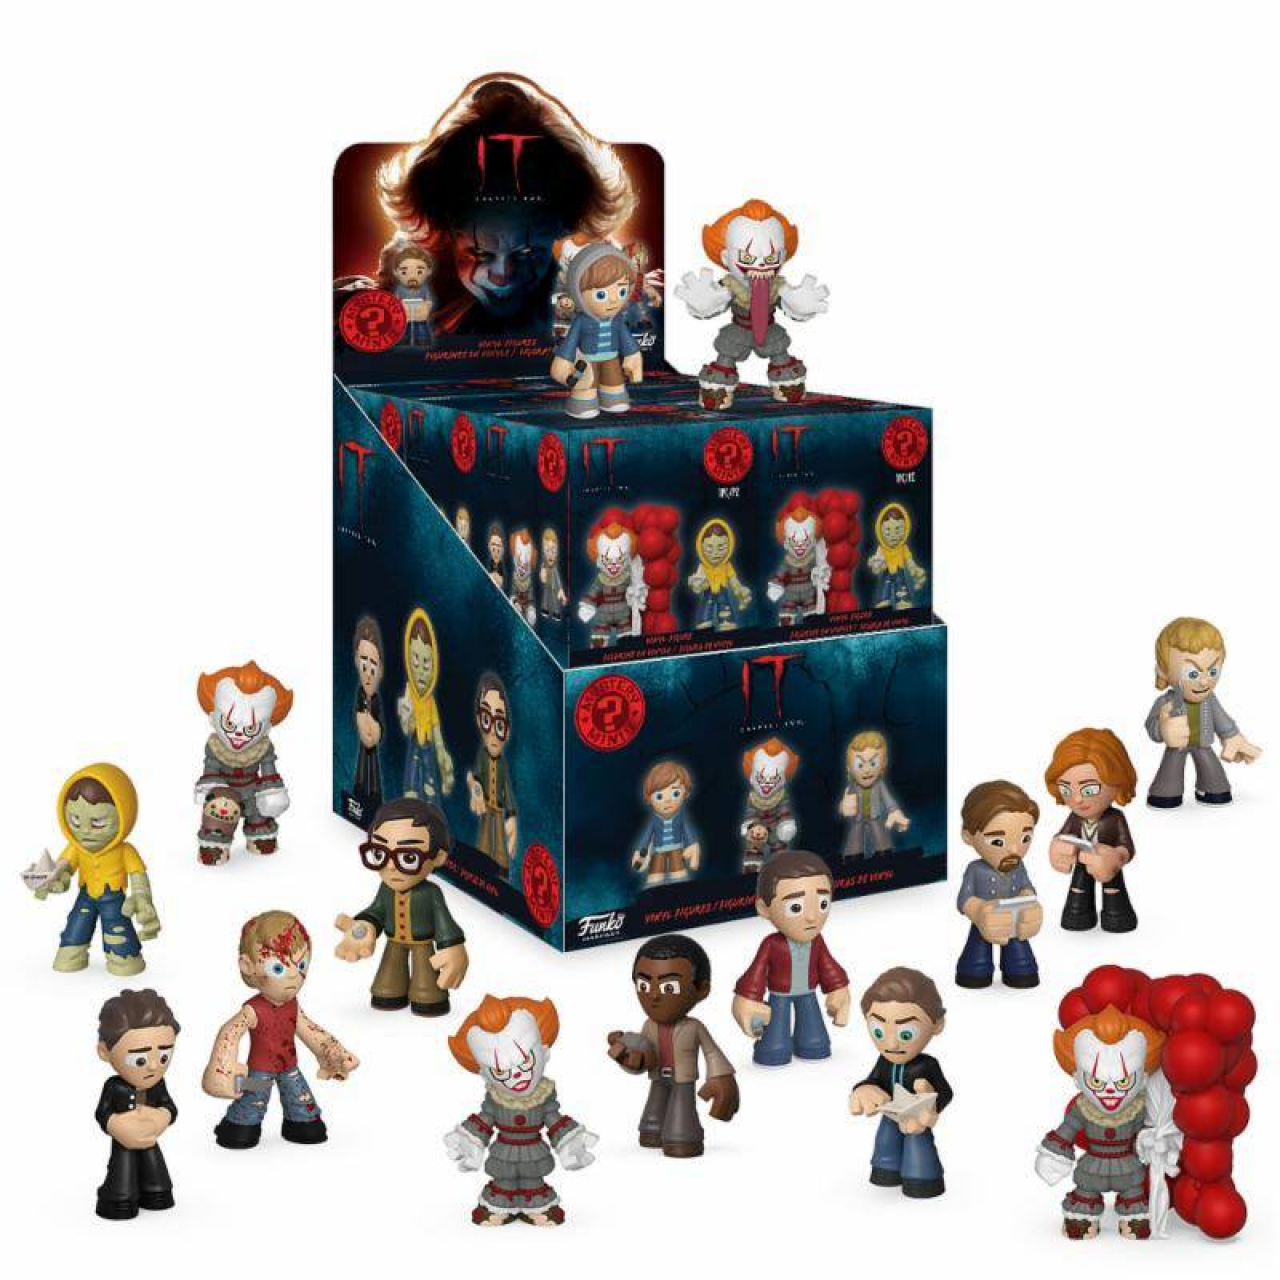 Stephen King's It 2 Mystery Mini Figures 5 cm Display (12)